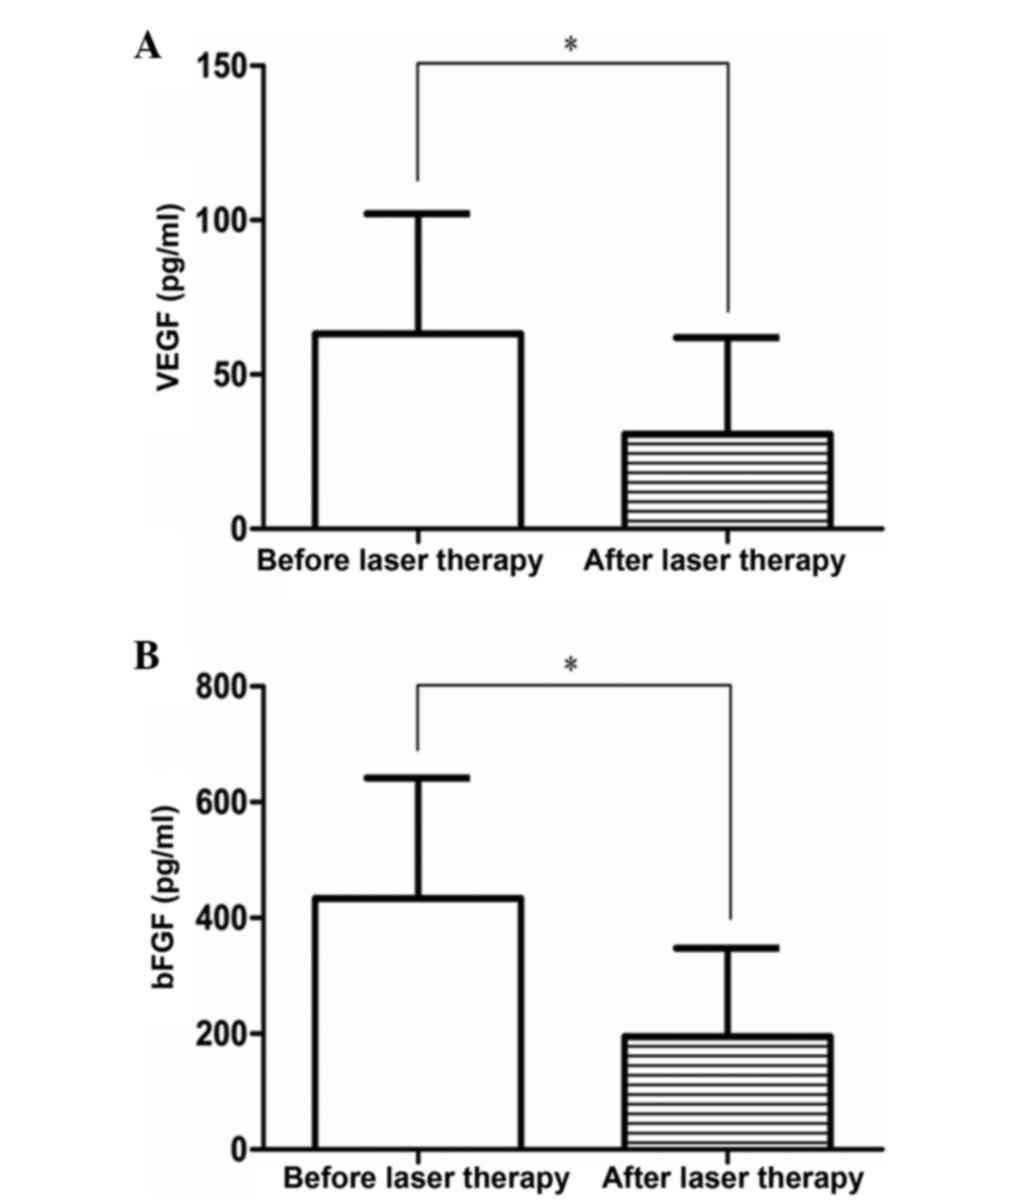 Effect Of Laser Therapy On Plasma Expression Of Vegf And